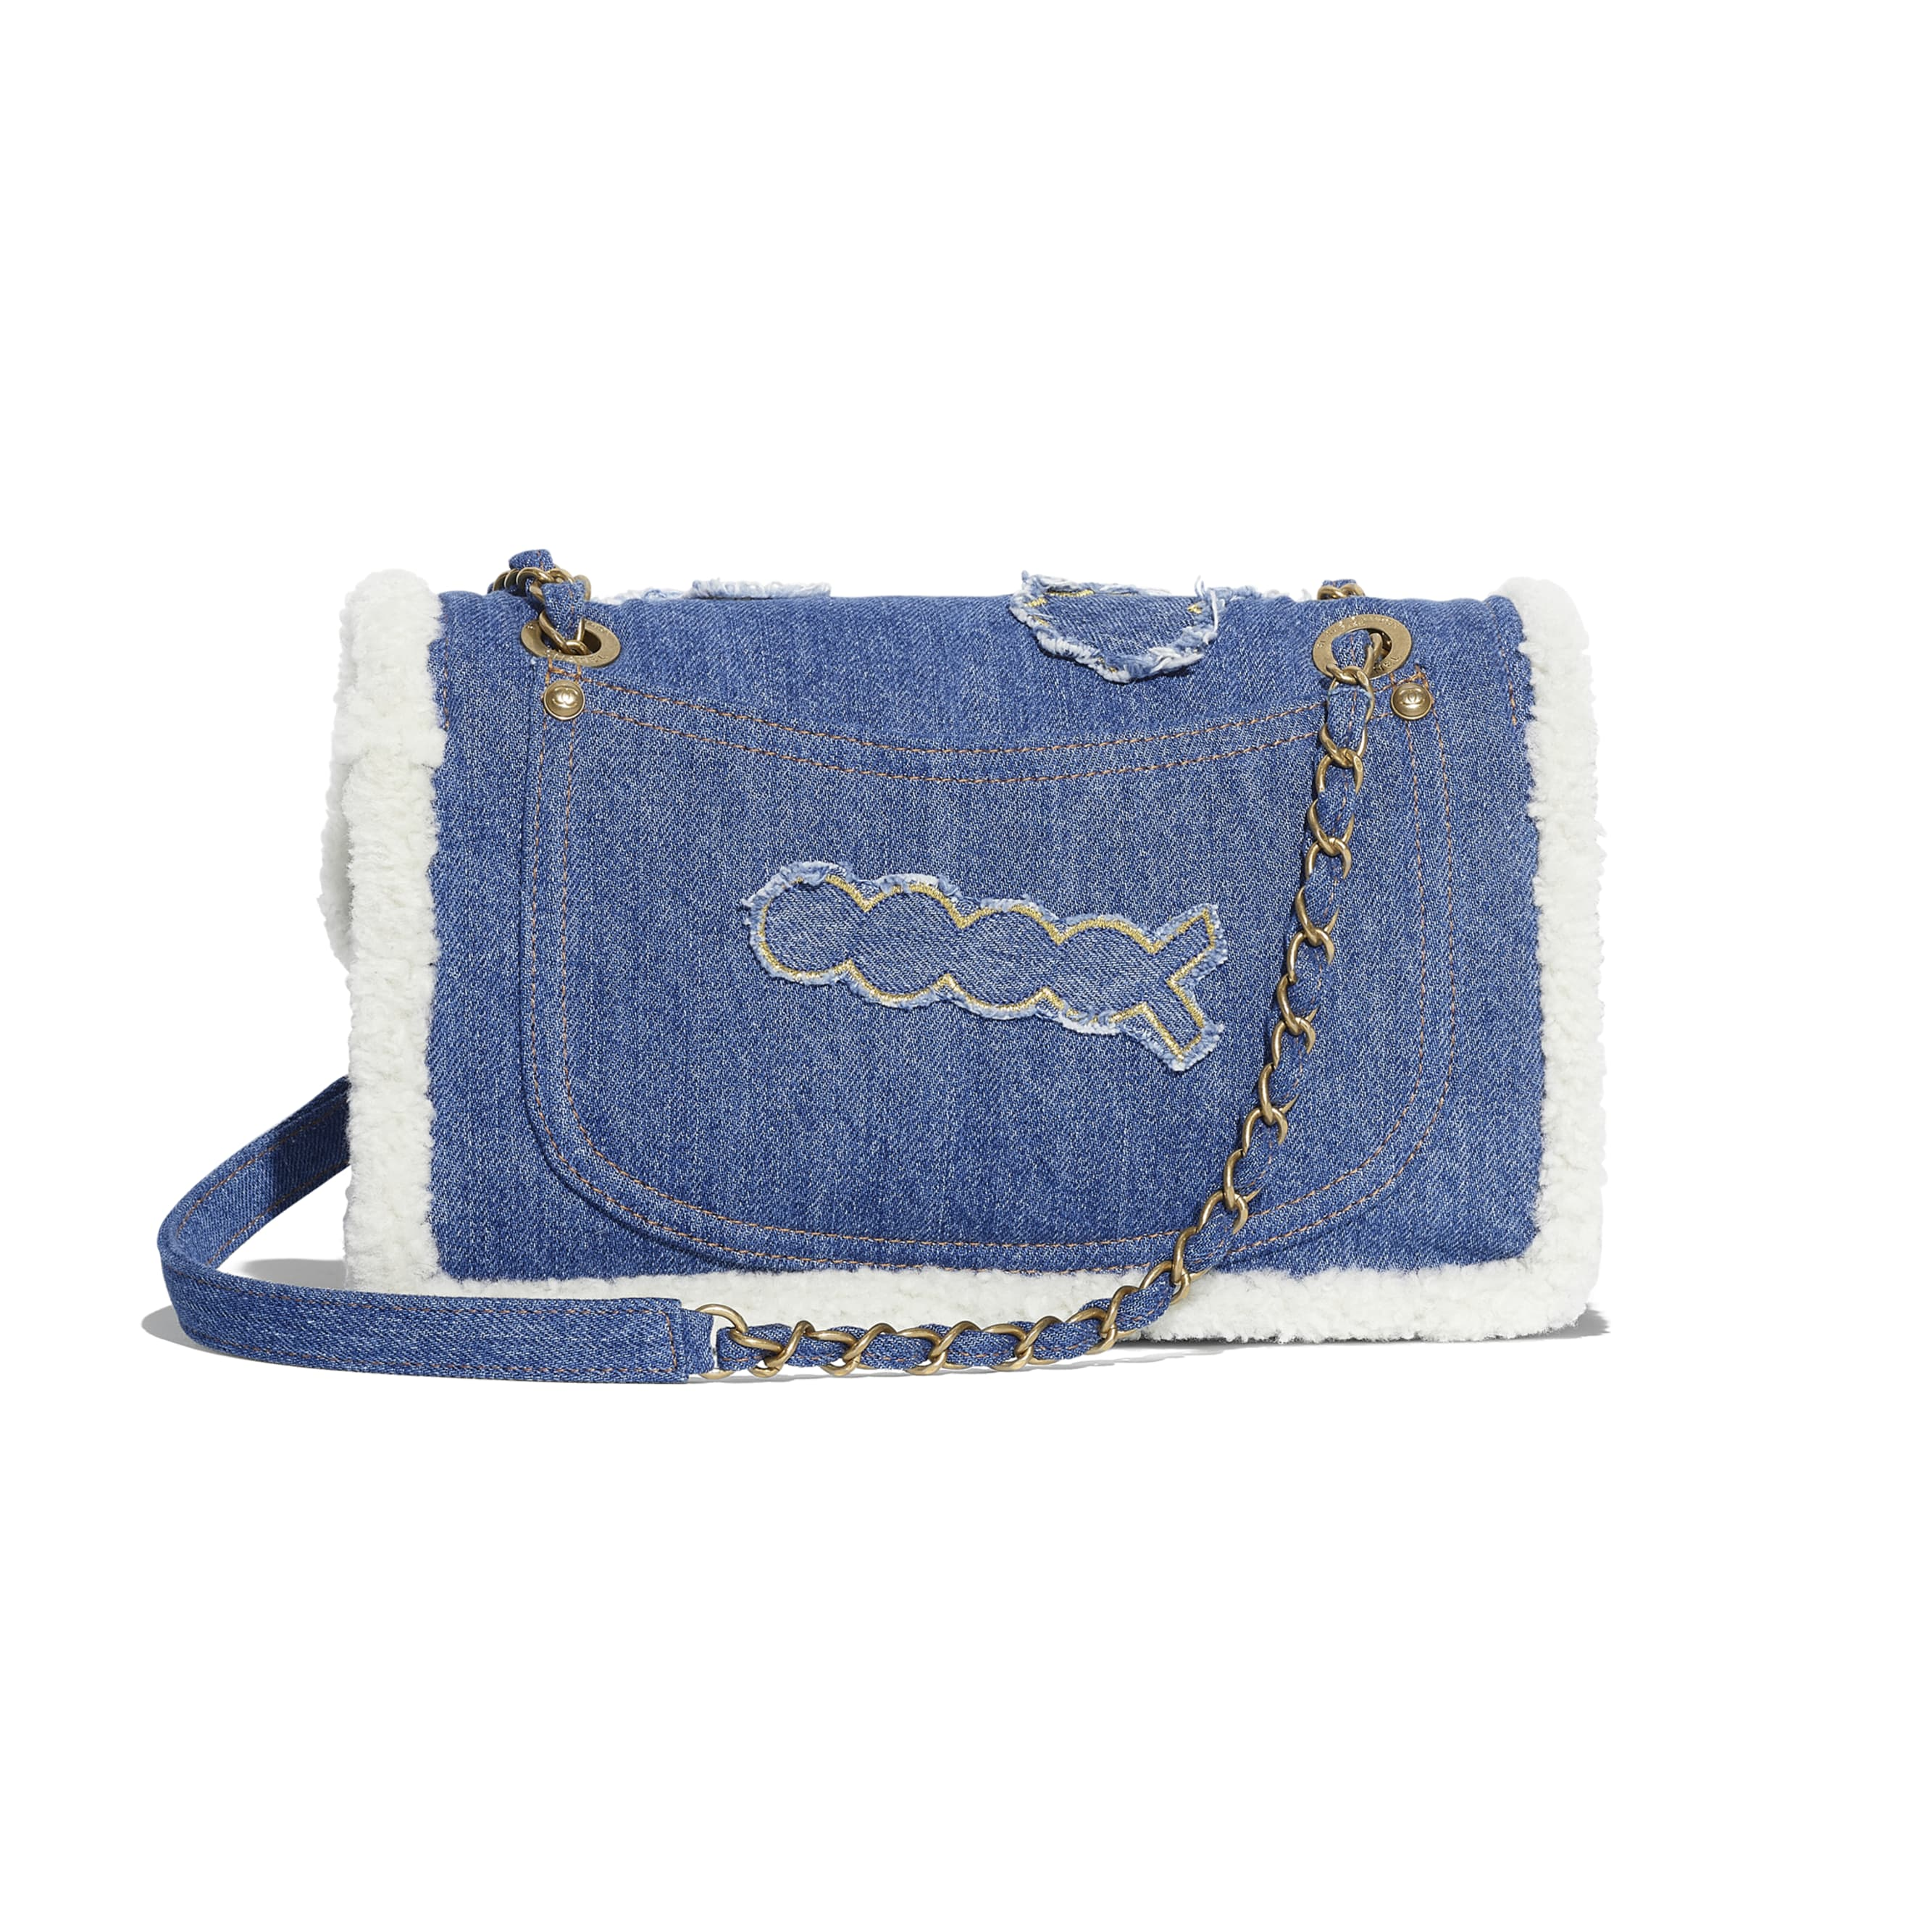 Flap Bag - Light Blue - Cotton, Shearling Sheepskin & Gold-Tone Metal - Alternative view - see standard sized version